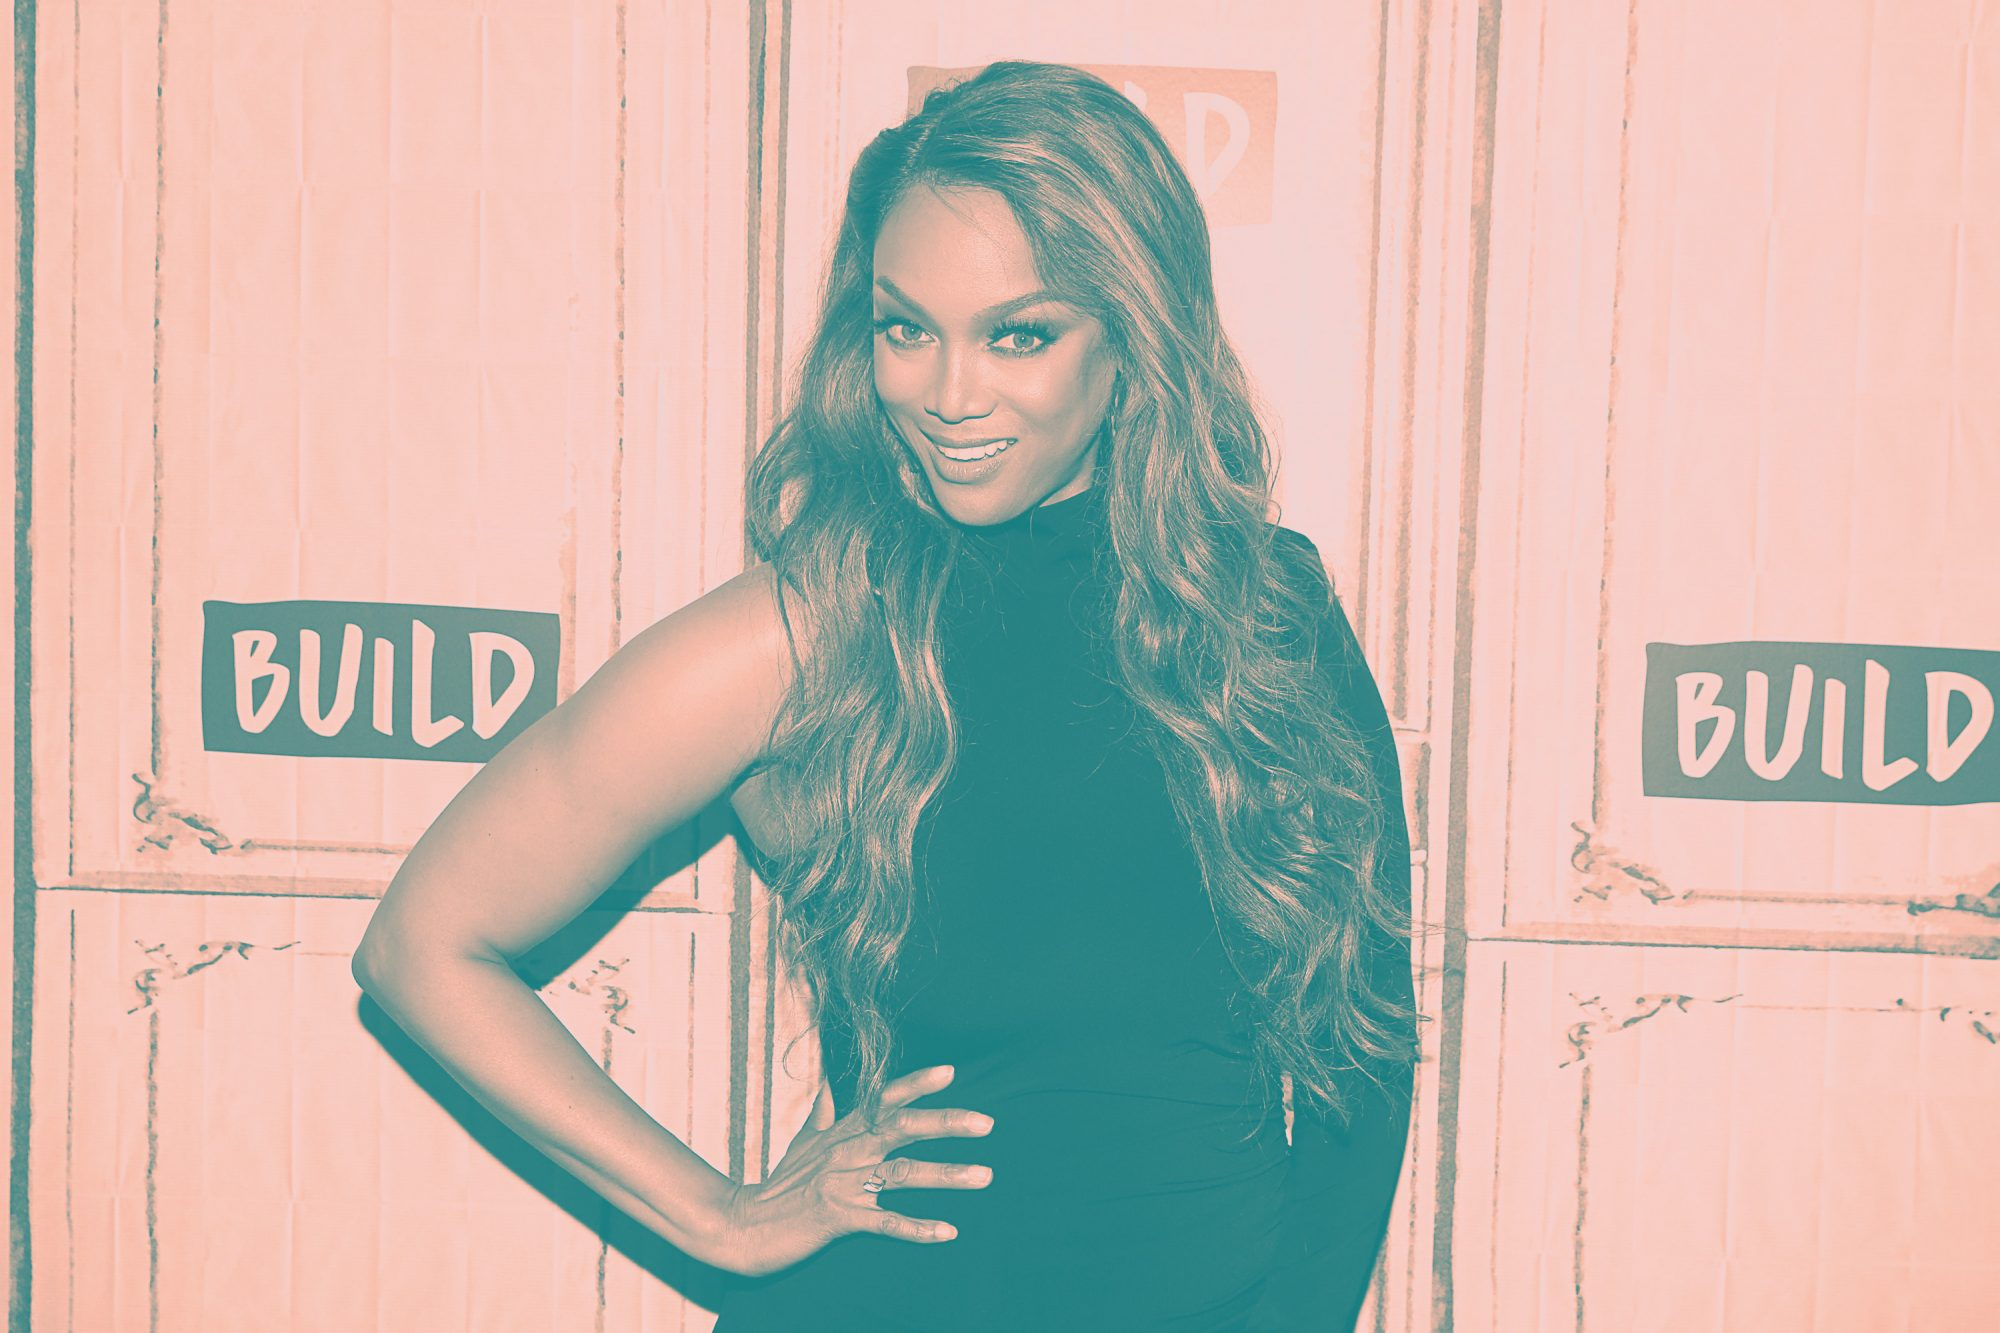 Tyra Banks Recreates Sports Illustrated Cover 23 Years Later at Age 45:  25 Pounds Heavier""